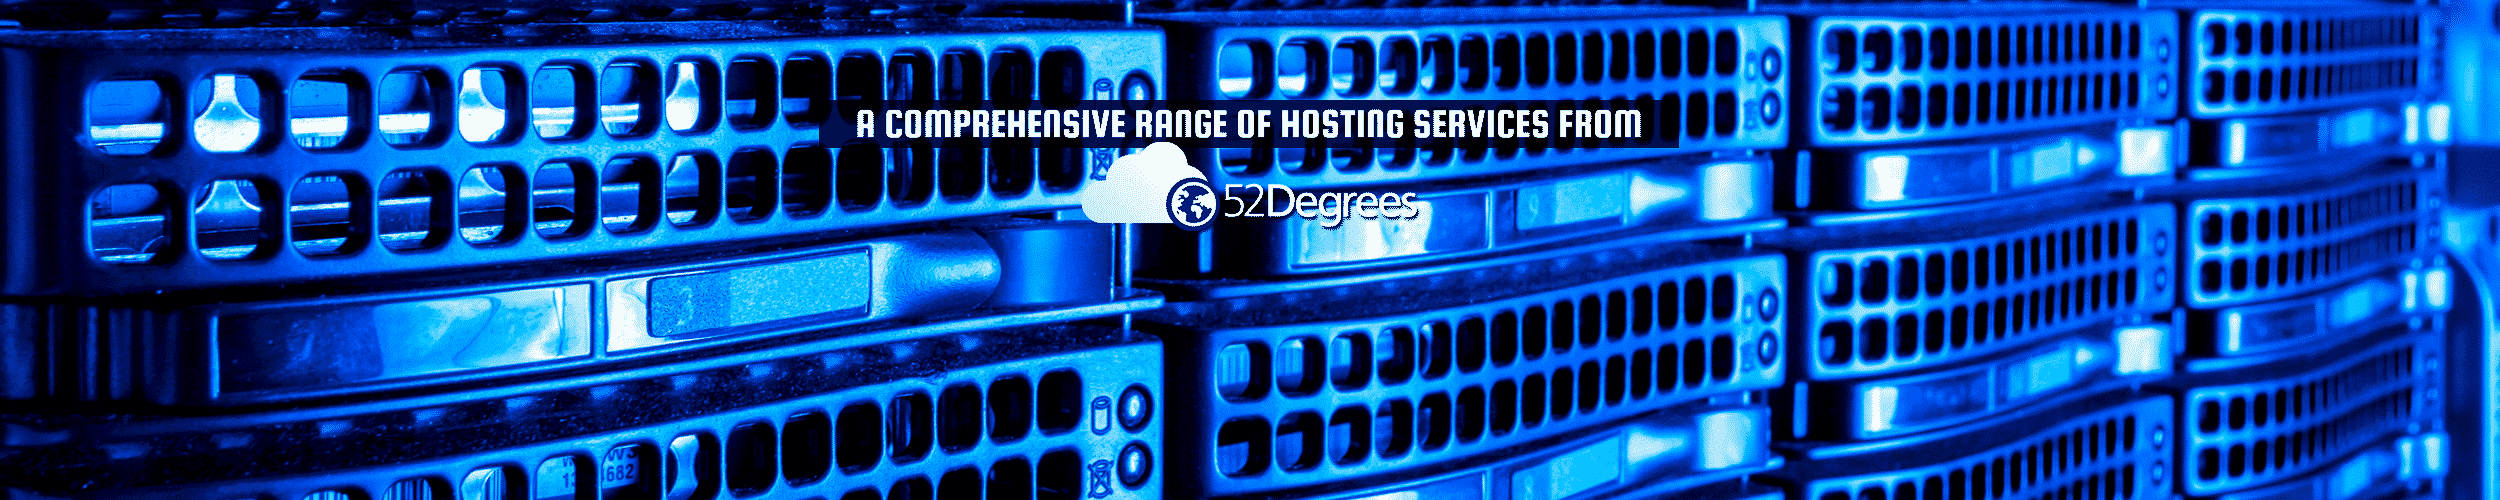 "52Degrees About Us - feature image | ""a comprehensive range of hosting services from 52Degrees"" 